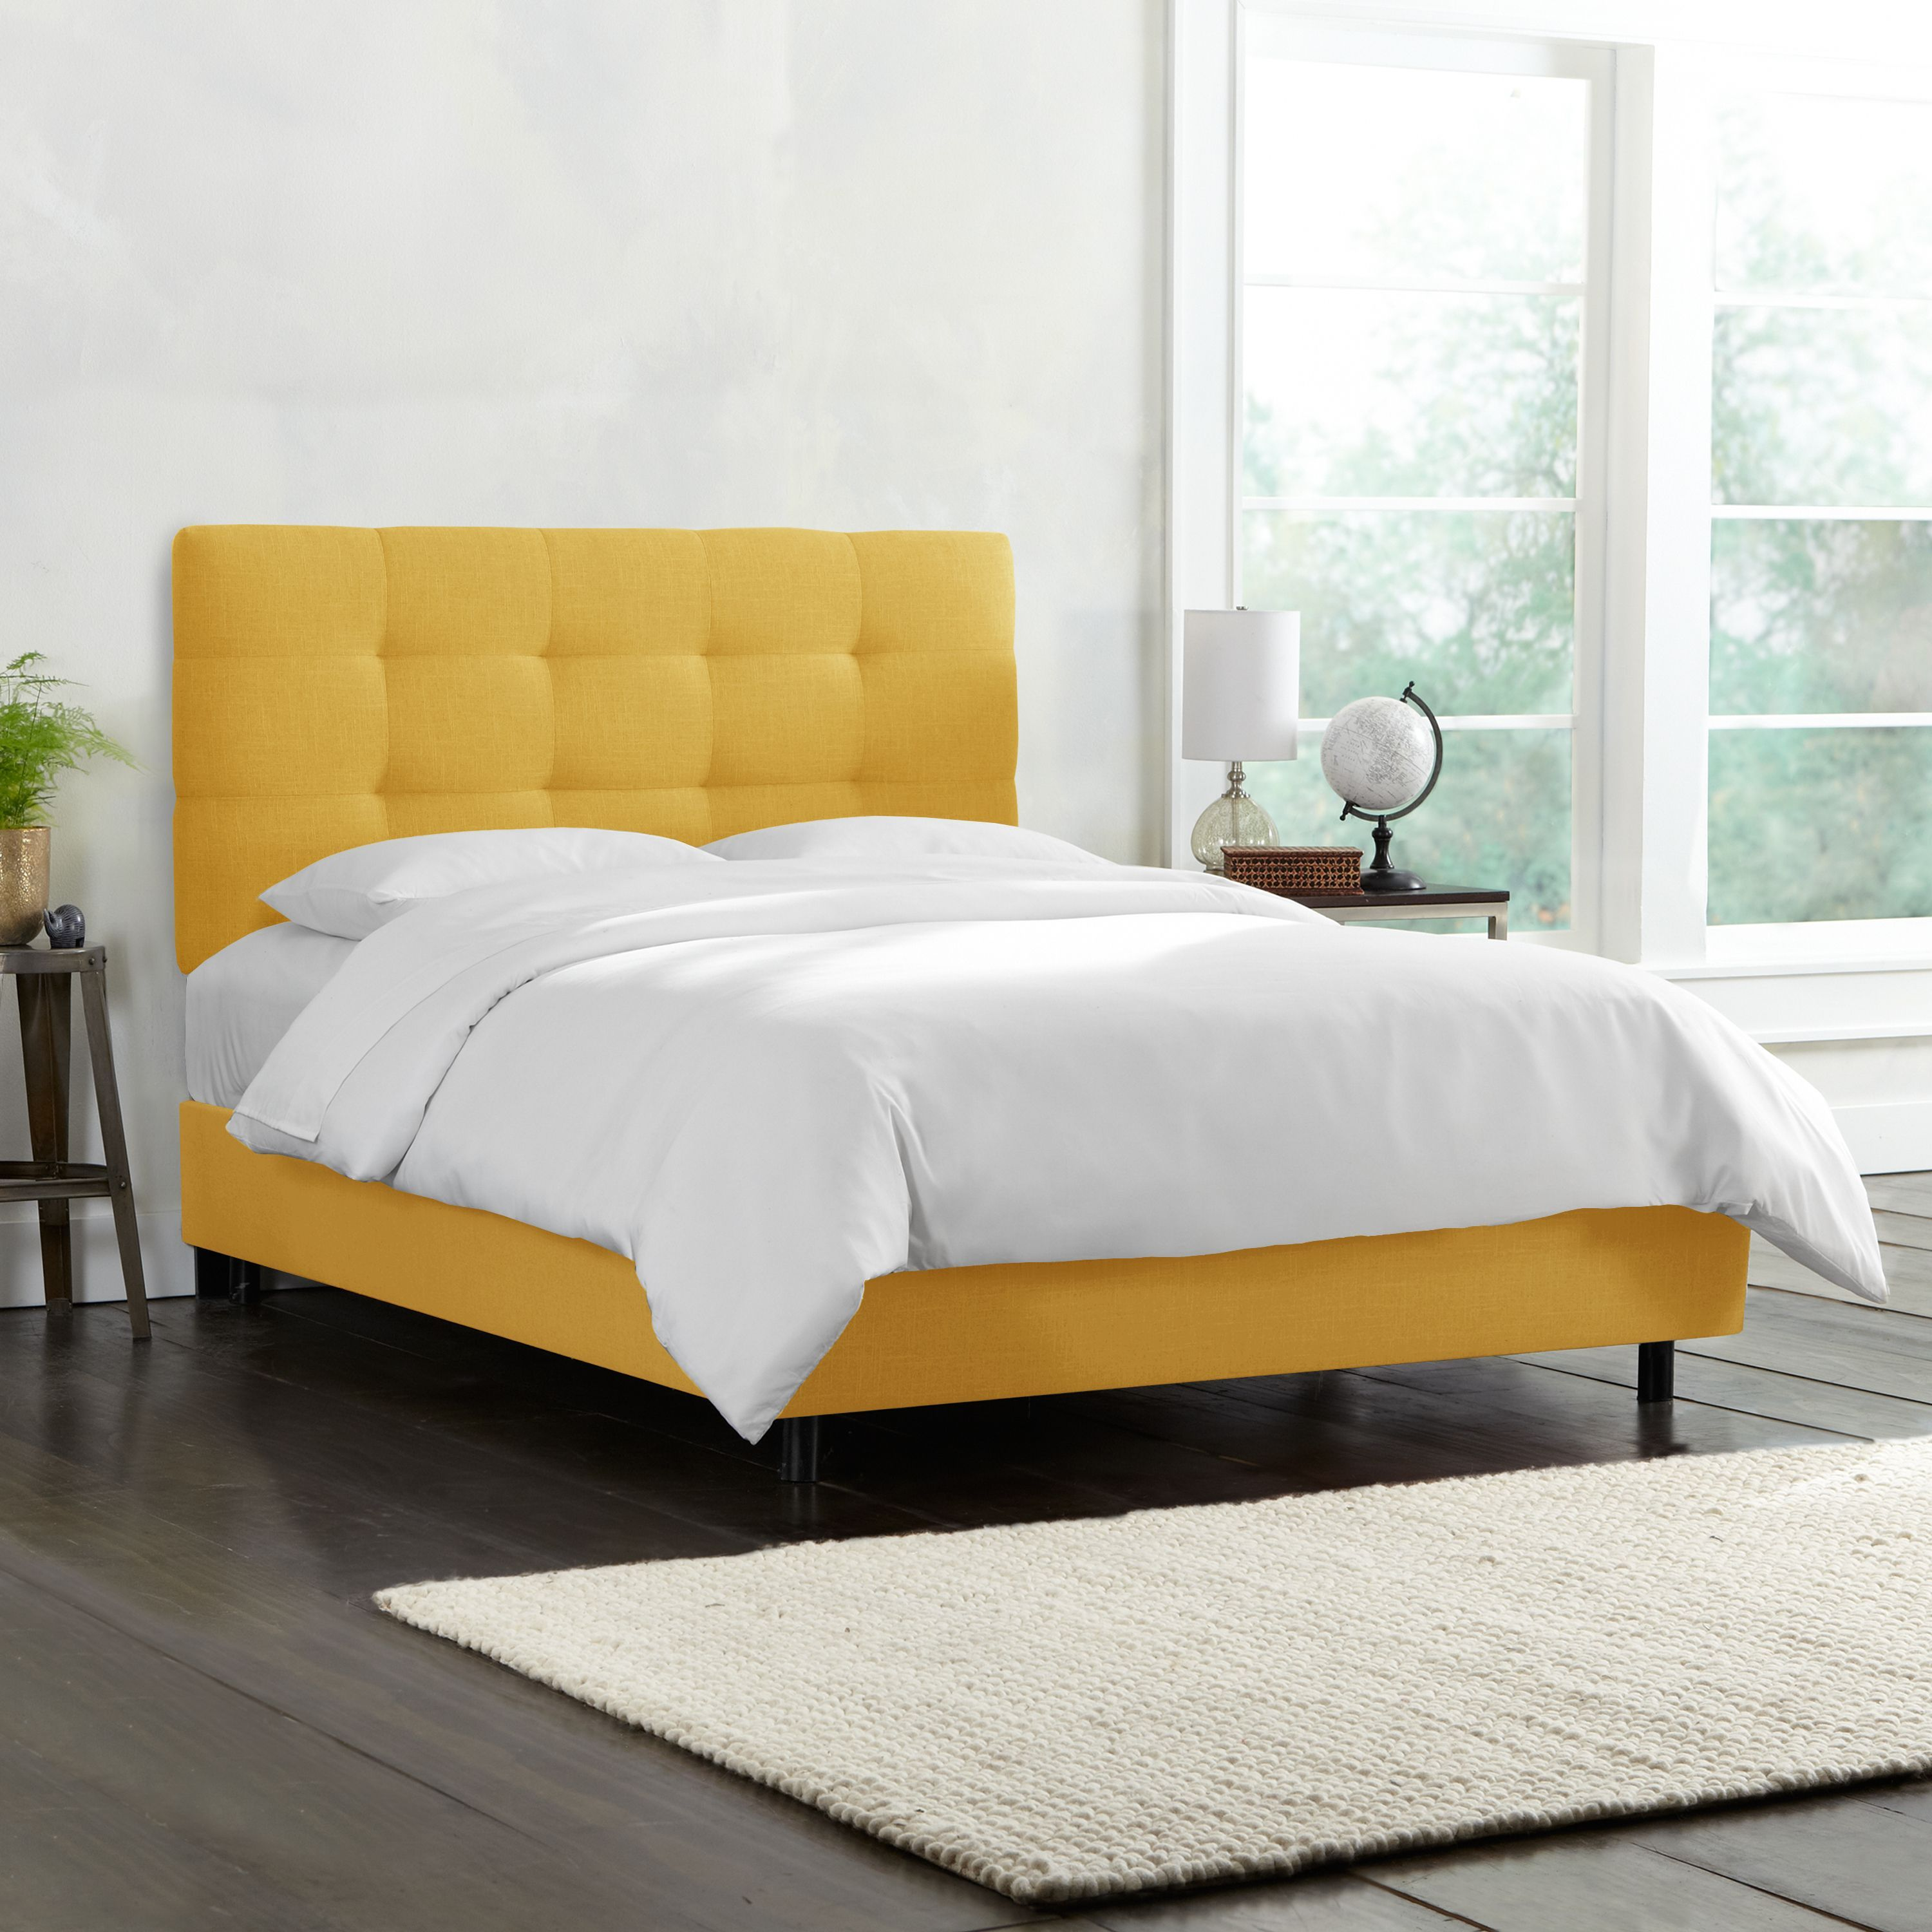 Skyline Furniture Tufted Bed in Linen French Yellow (Queen - Queen)